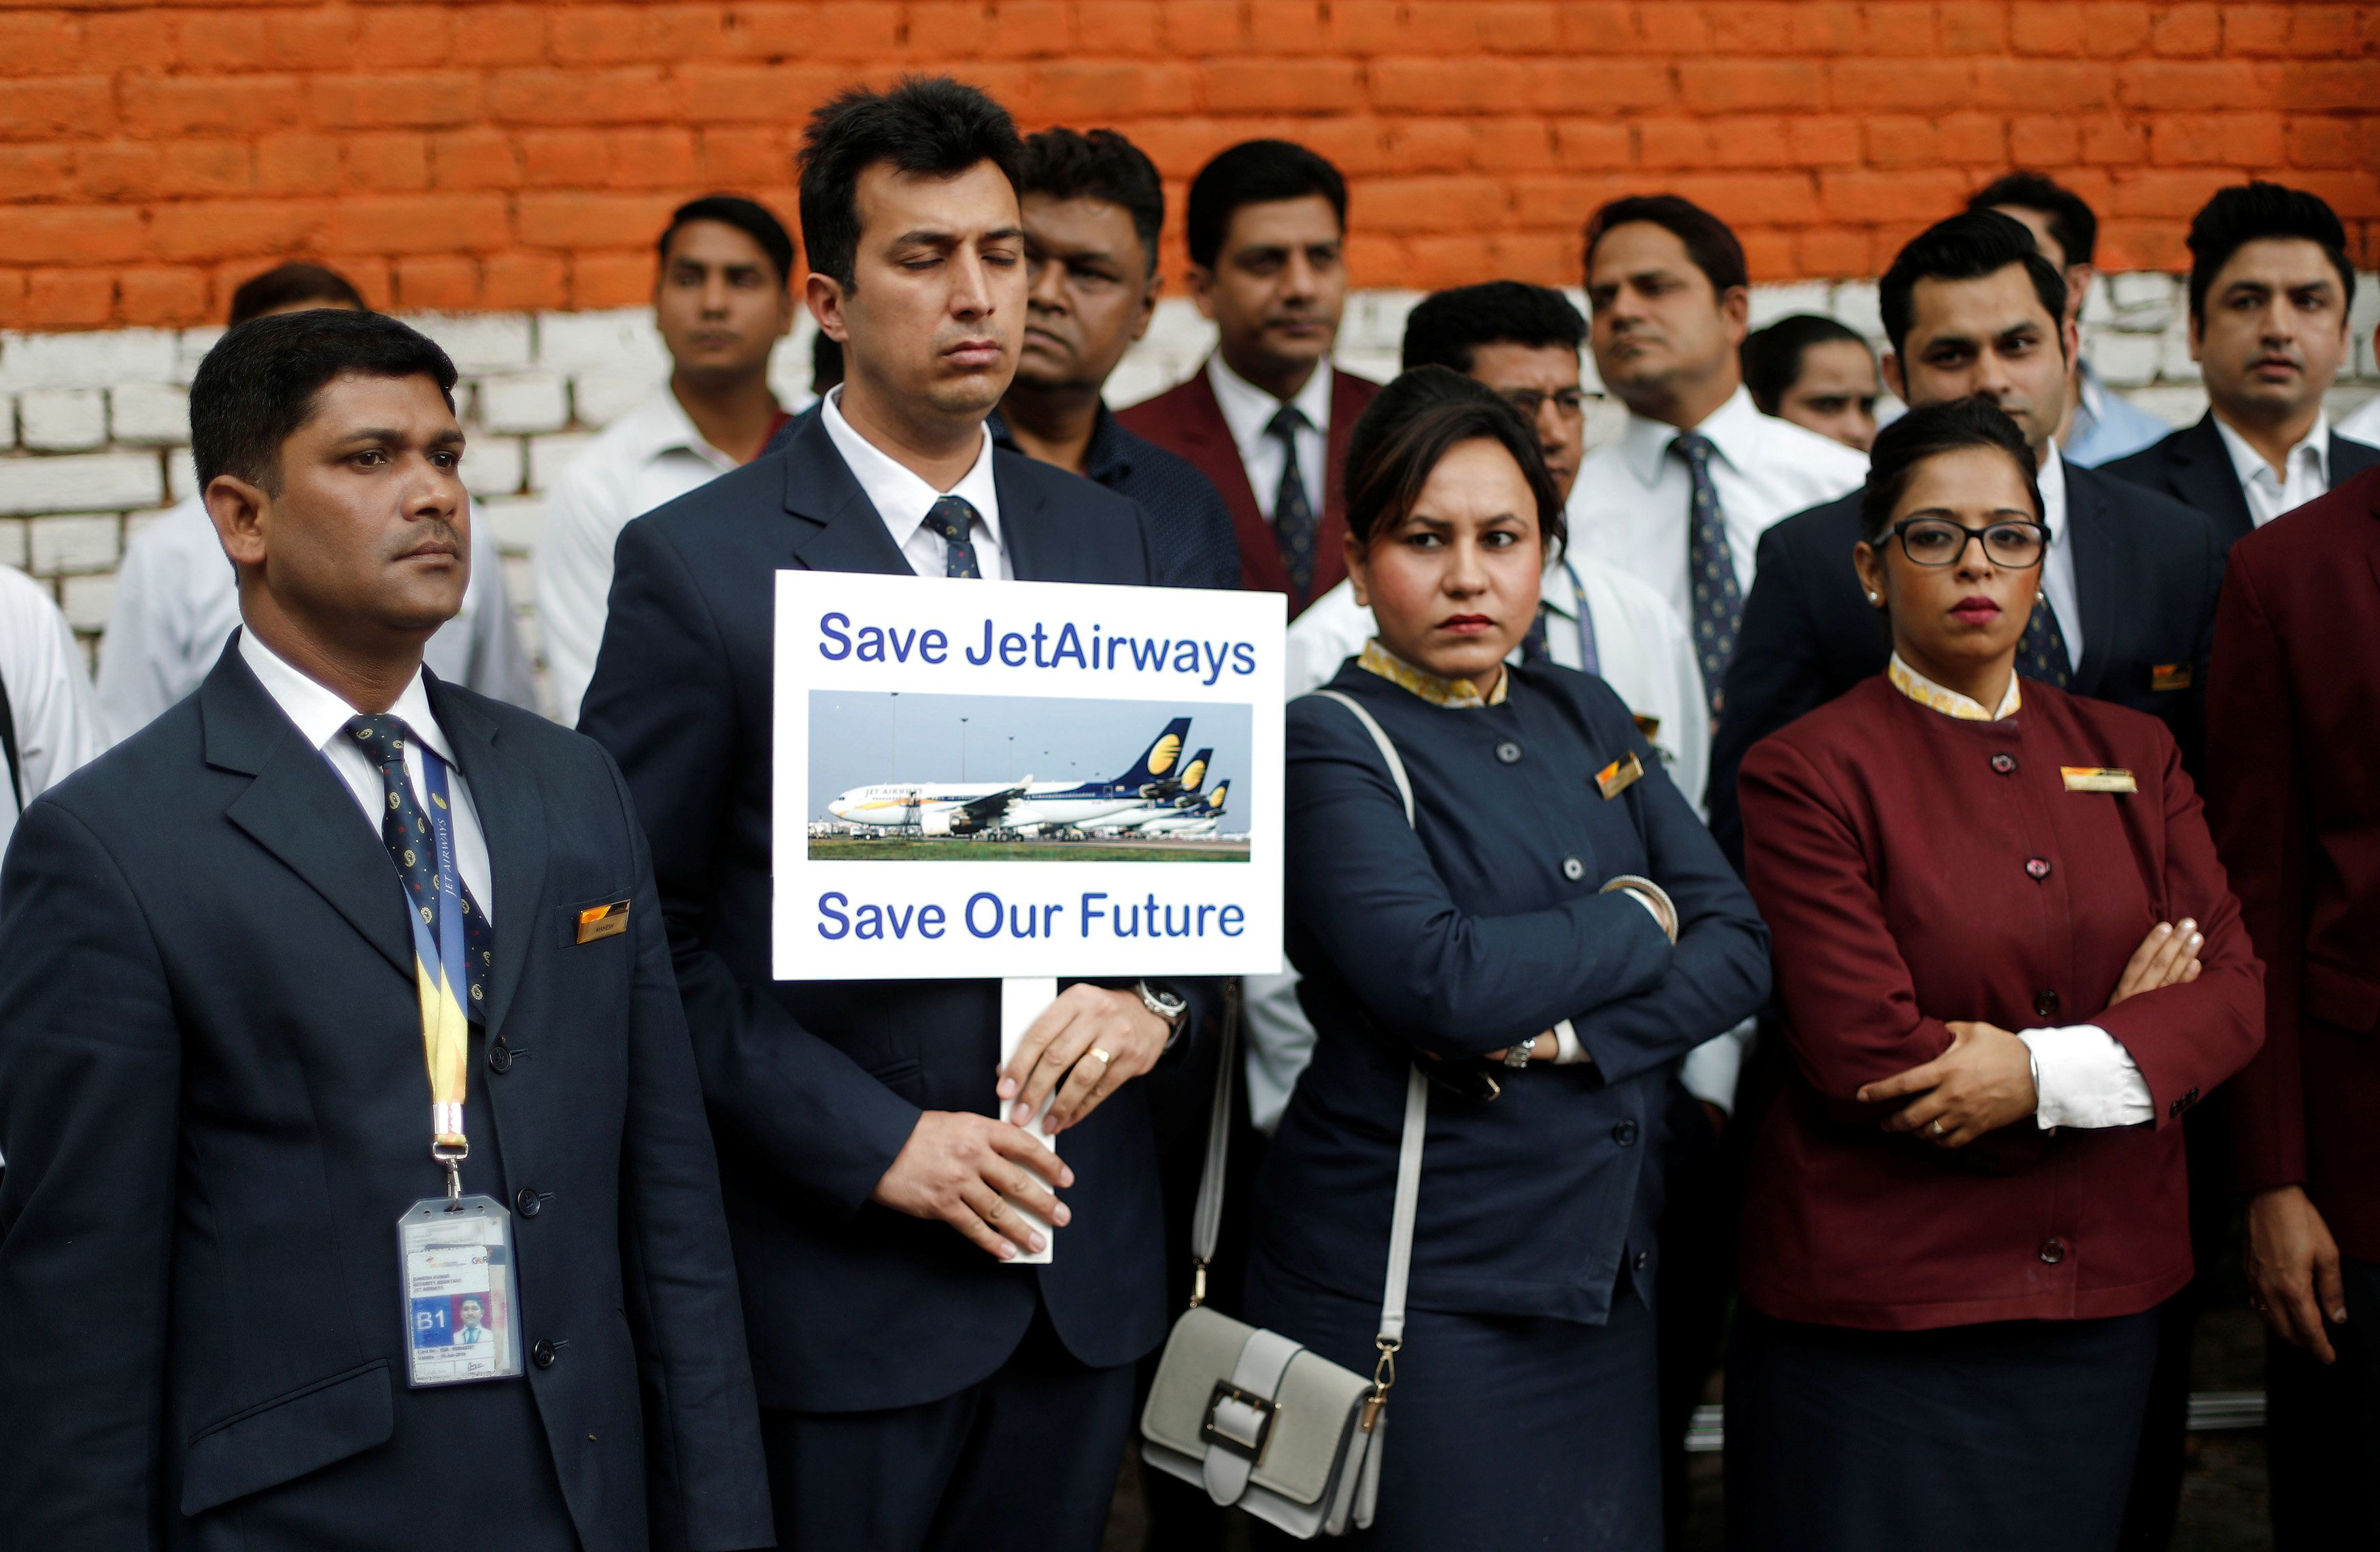 A Jet Airways employee holds a placard as he and others attend a protest demanding to